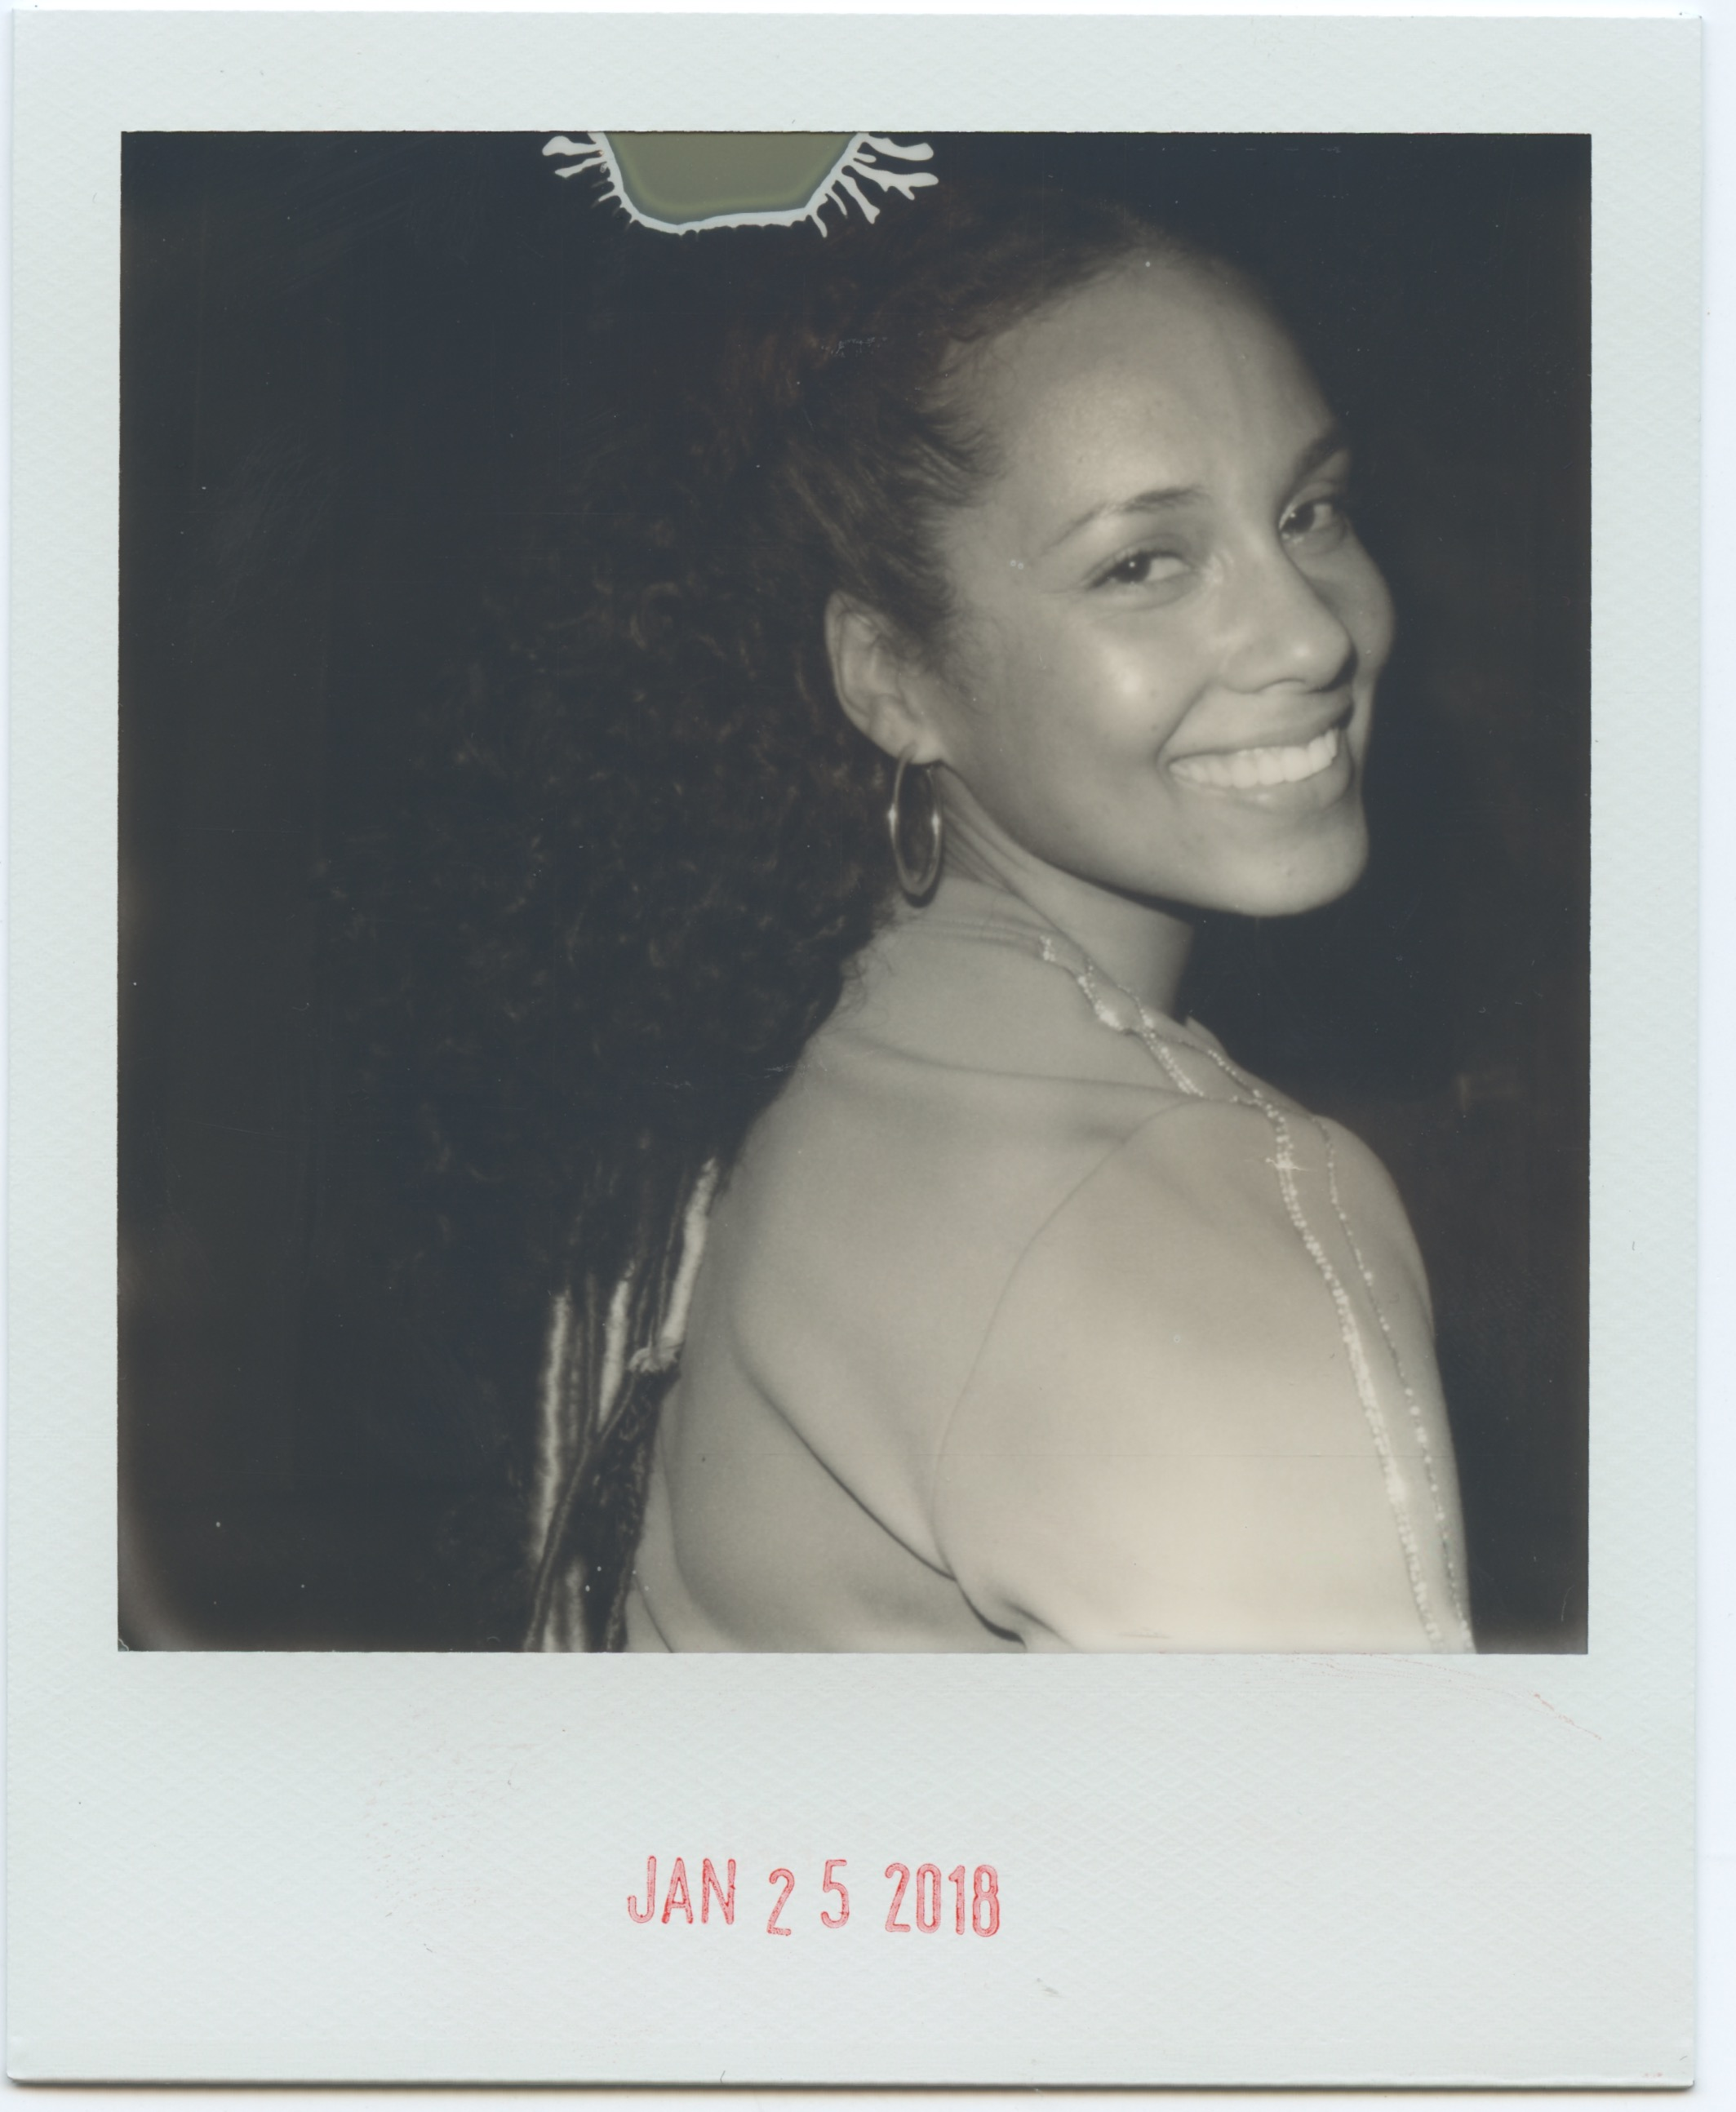 We had the honor of shooting Alicia Keys' birthday celebration at Tao Downtown. - // Alicia specifically requested that our team used Black and White film for her special night.